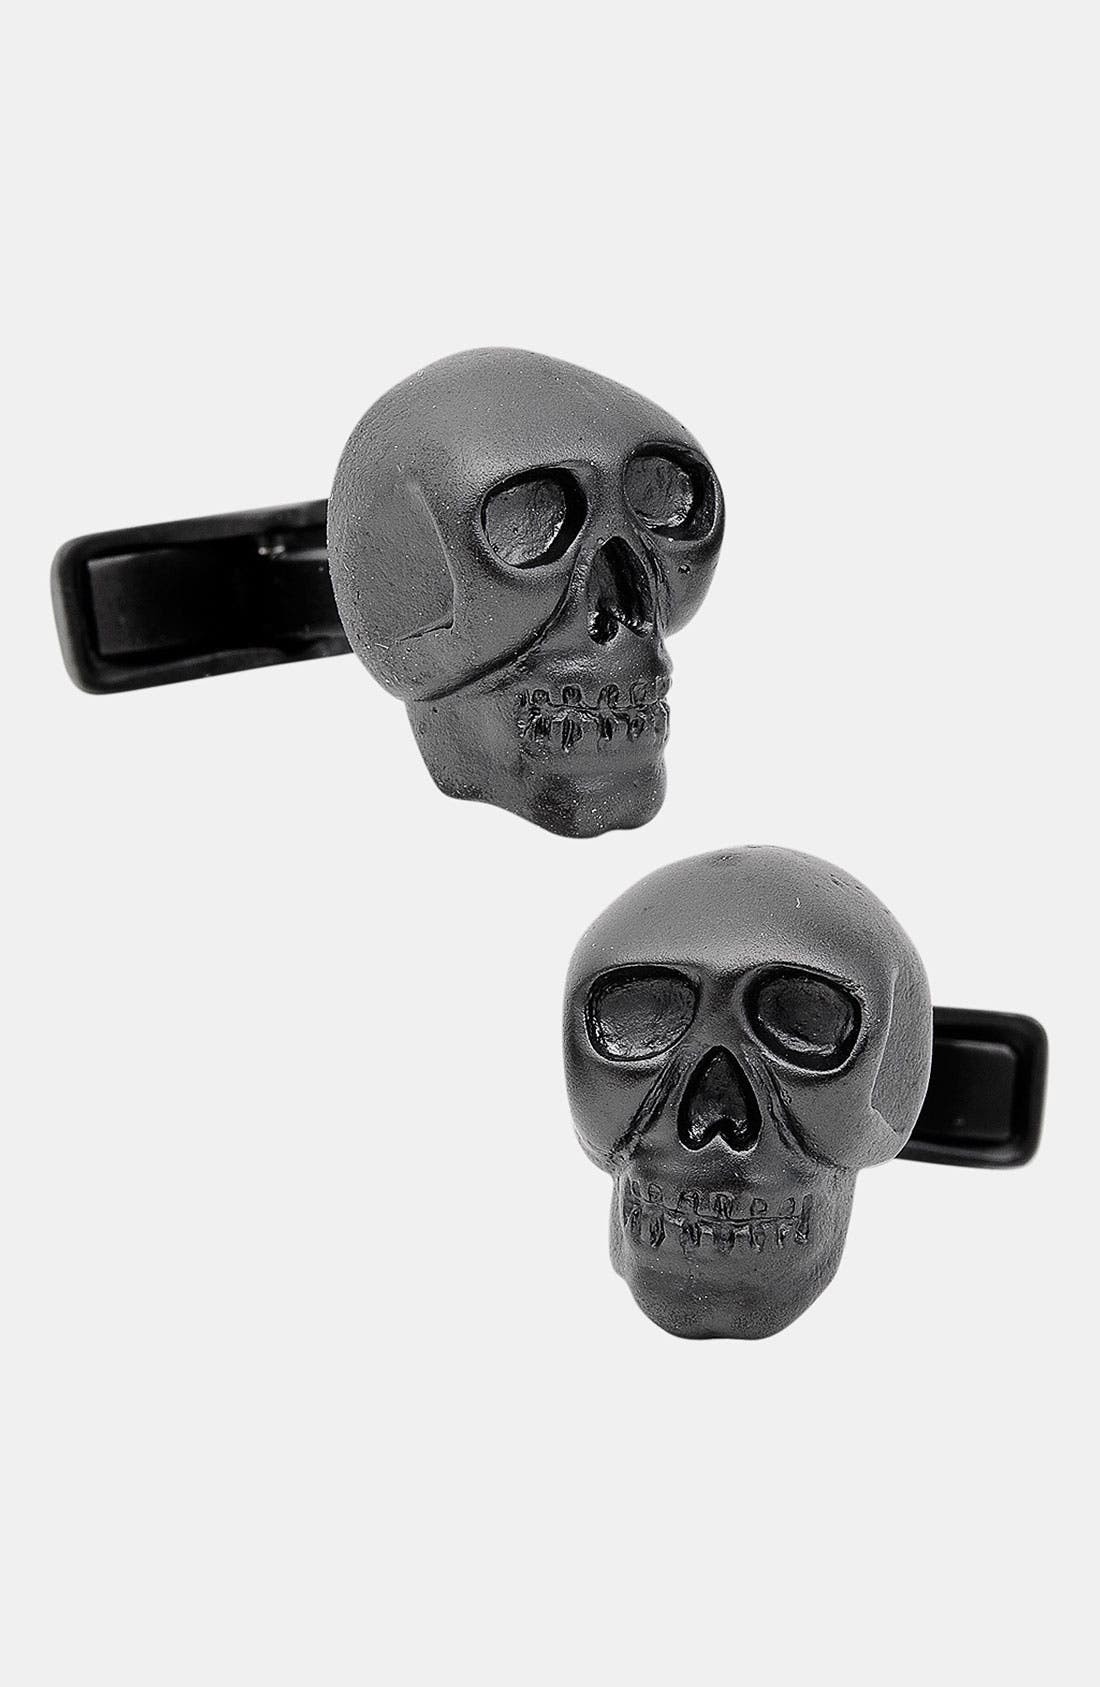 Alternate Image 1 Selected - Ox and Bull Trading Co. 'Iron Skull' Cuff Links